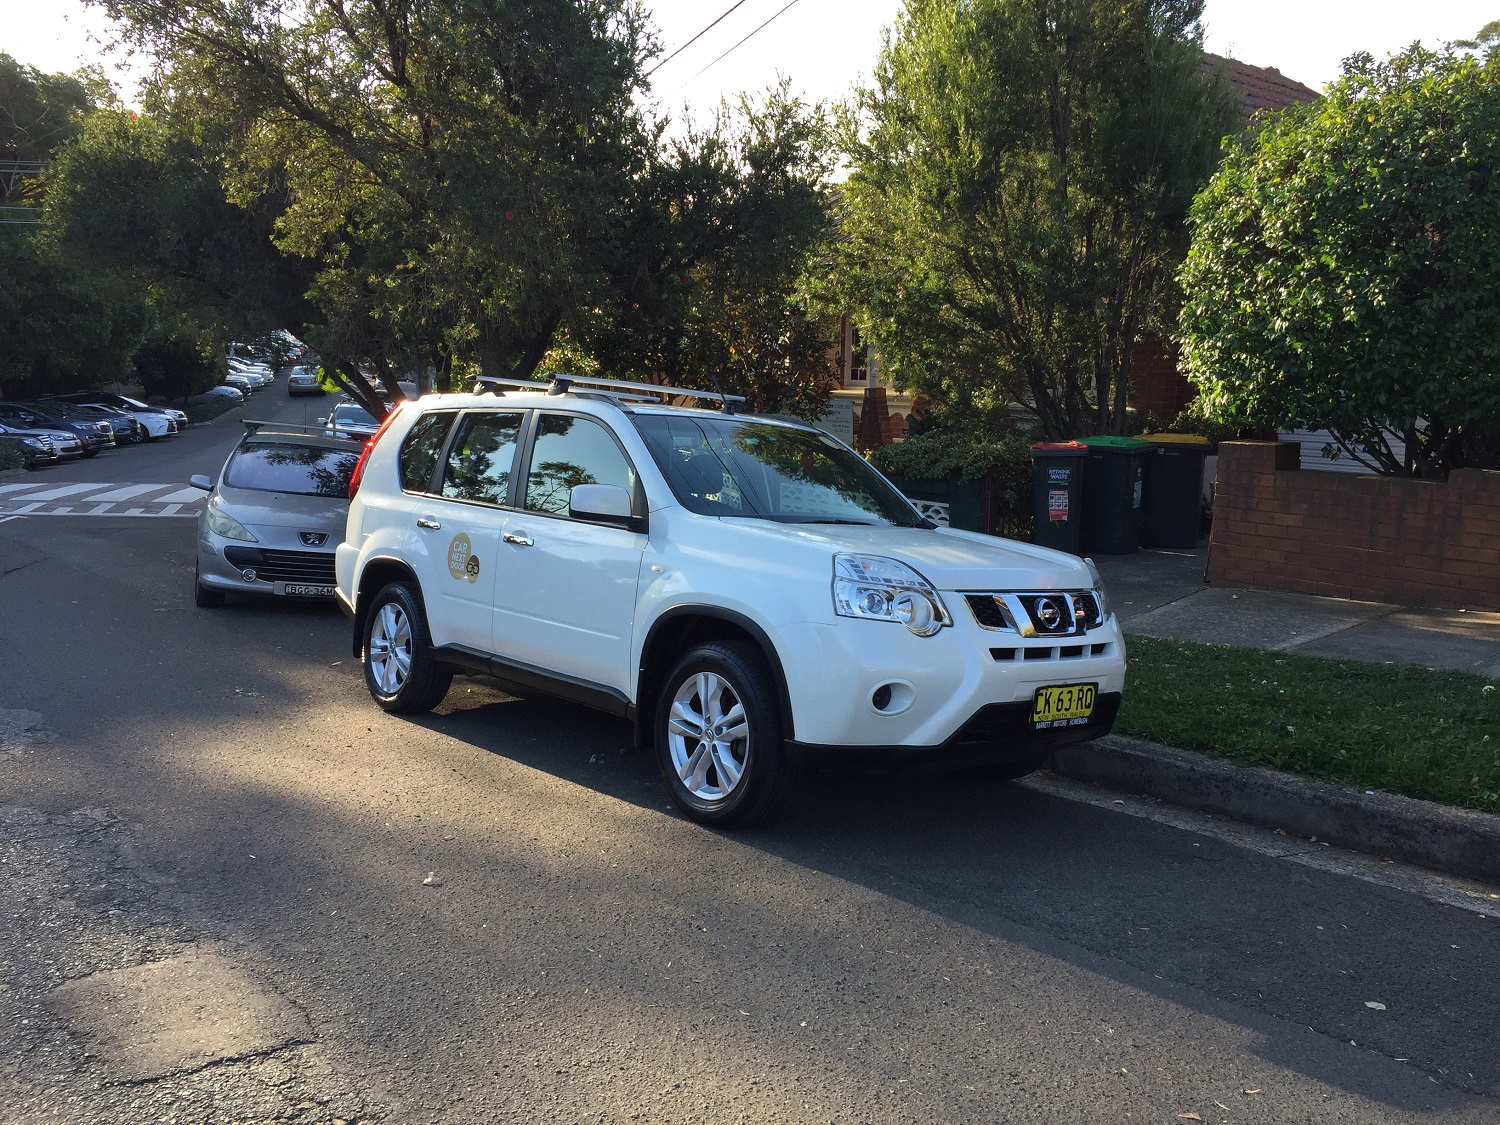 Picture of Martin's 2013 Nissan X trail